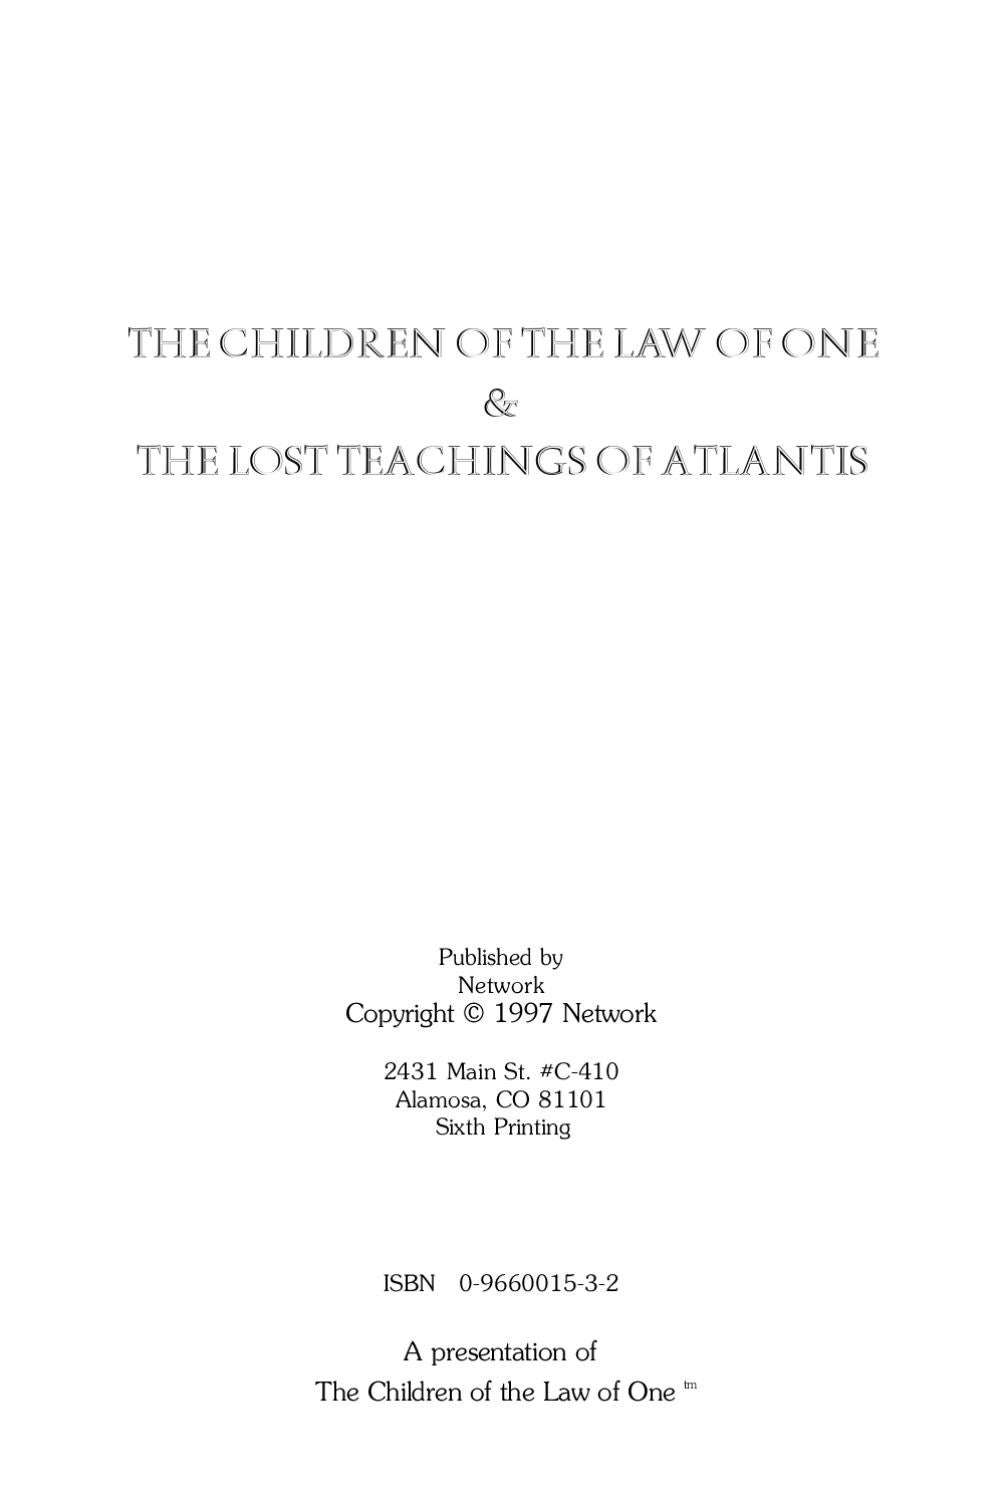 The Children Of Law One By Aly Del